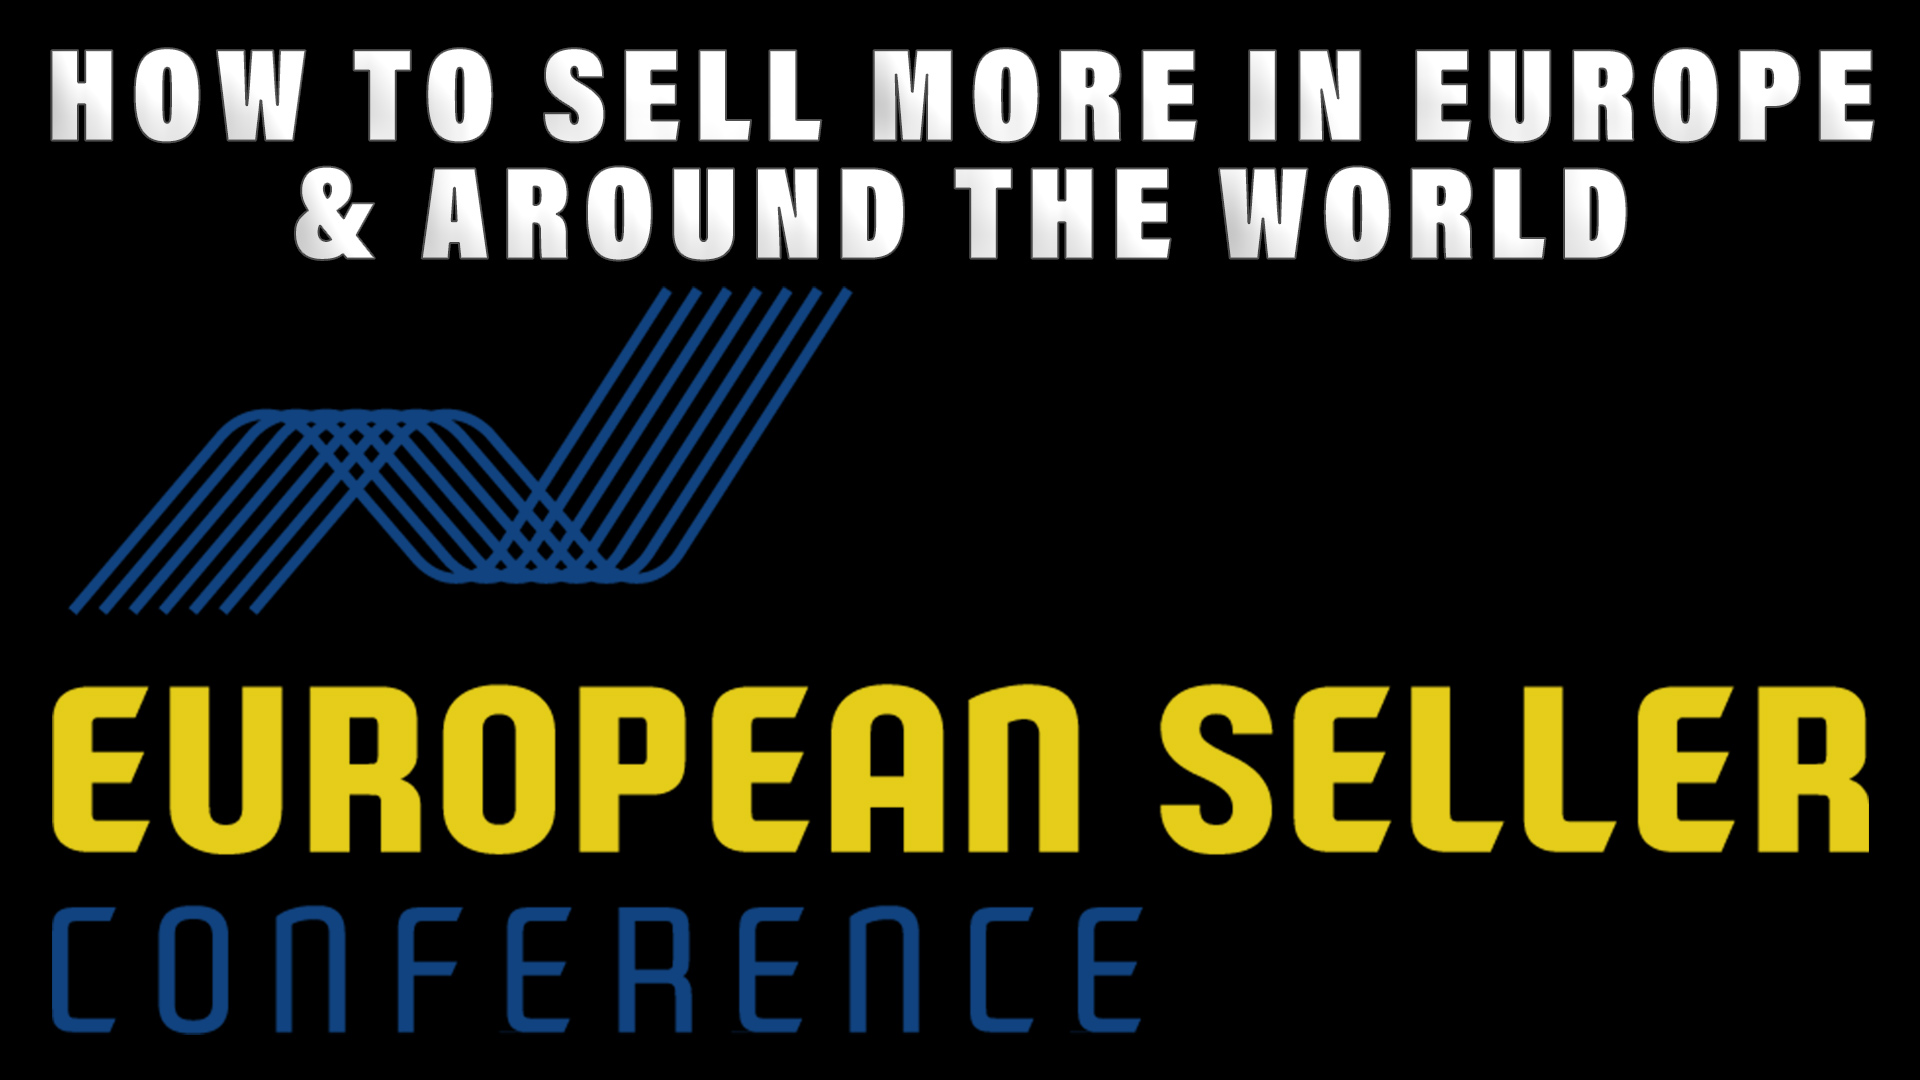 How to SELL MORE in Europe & Around the World